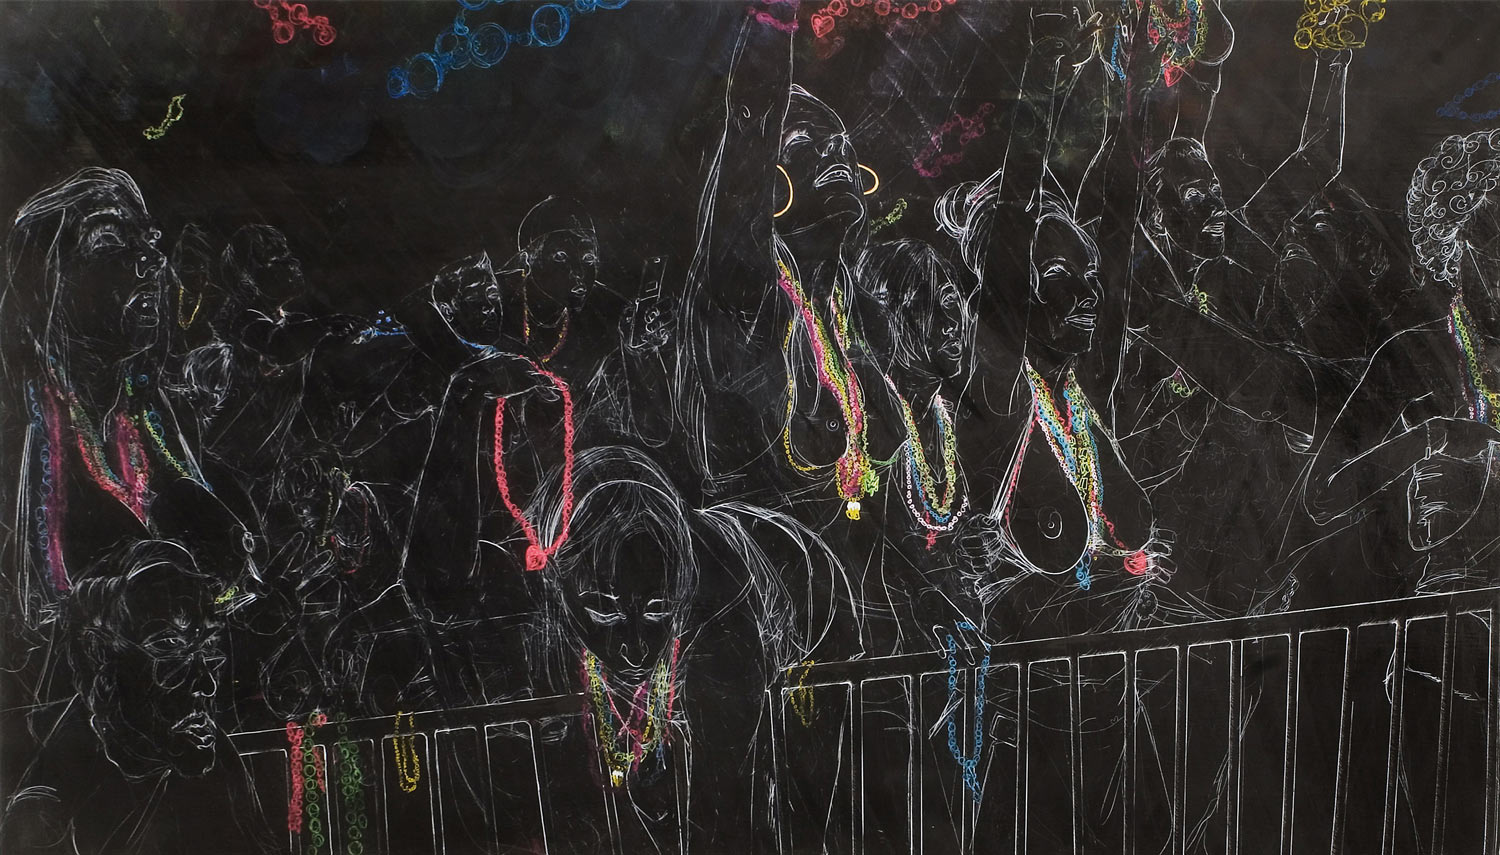 Chalkboard Style Paintings by Maximilian Toth: mtoth-1920-2007-witnesses-awaiting-judgement.jpg